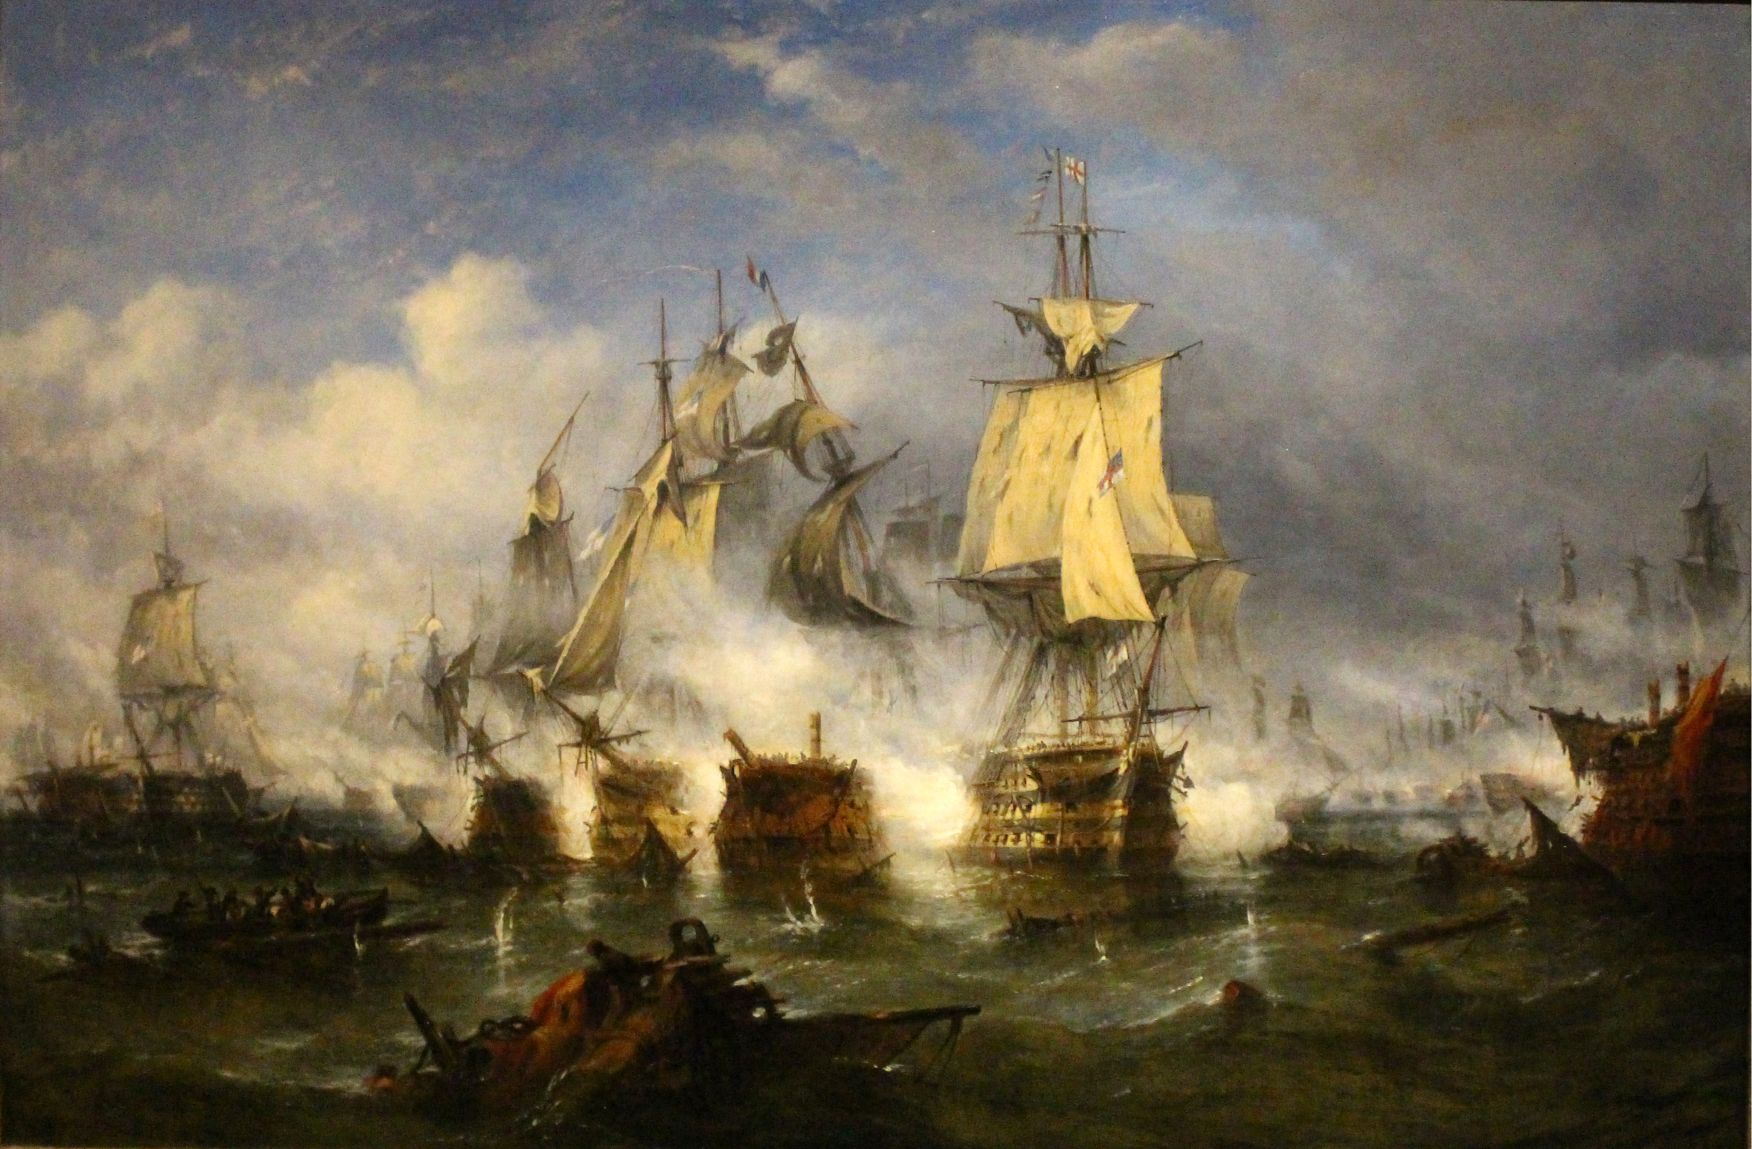 ship battle in ocean painting